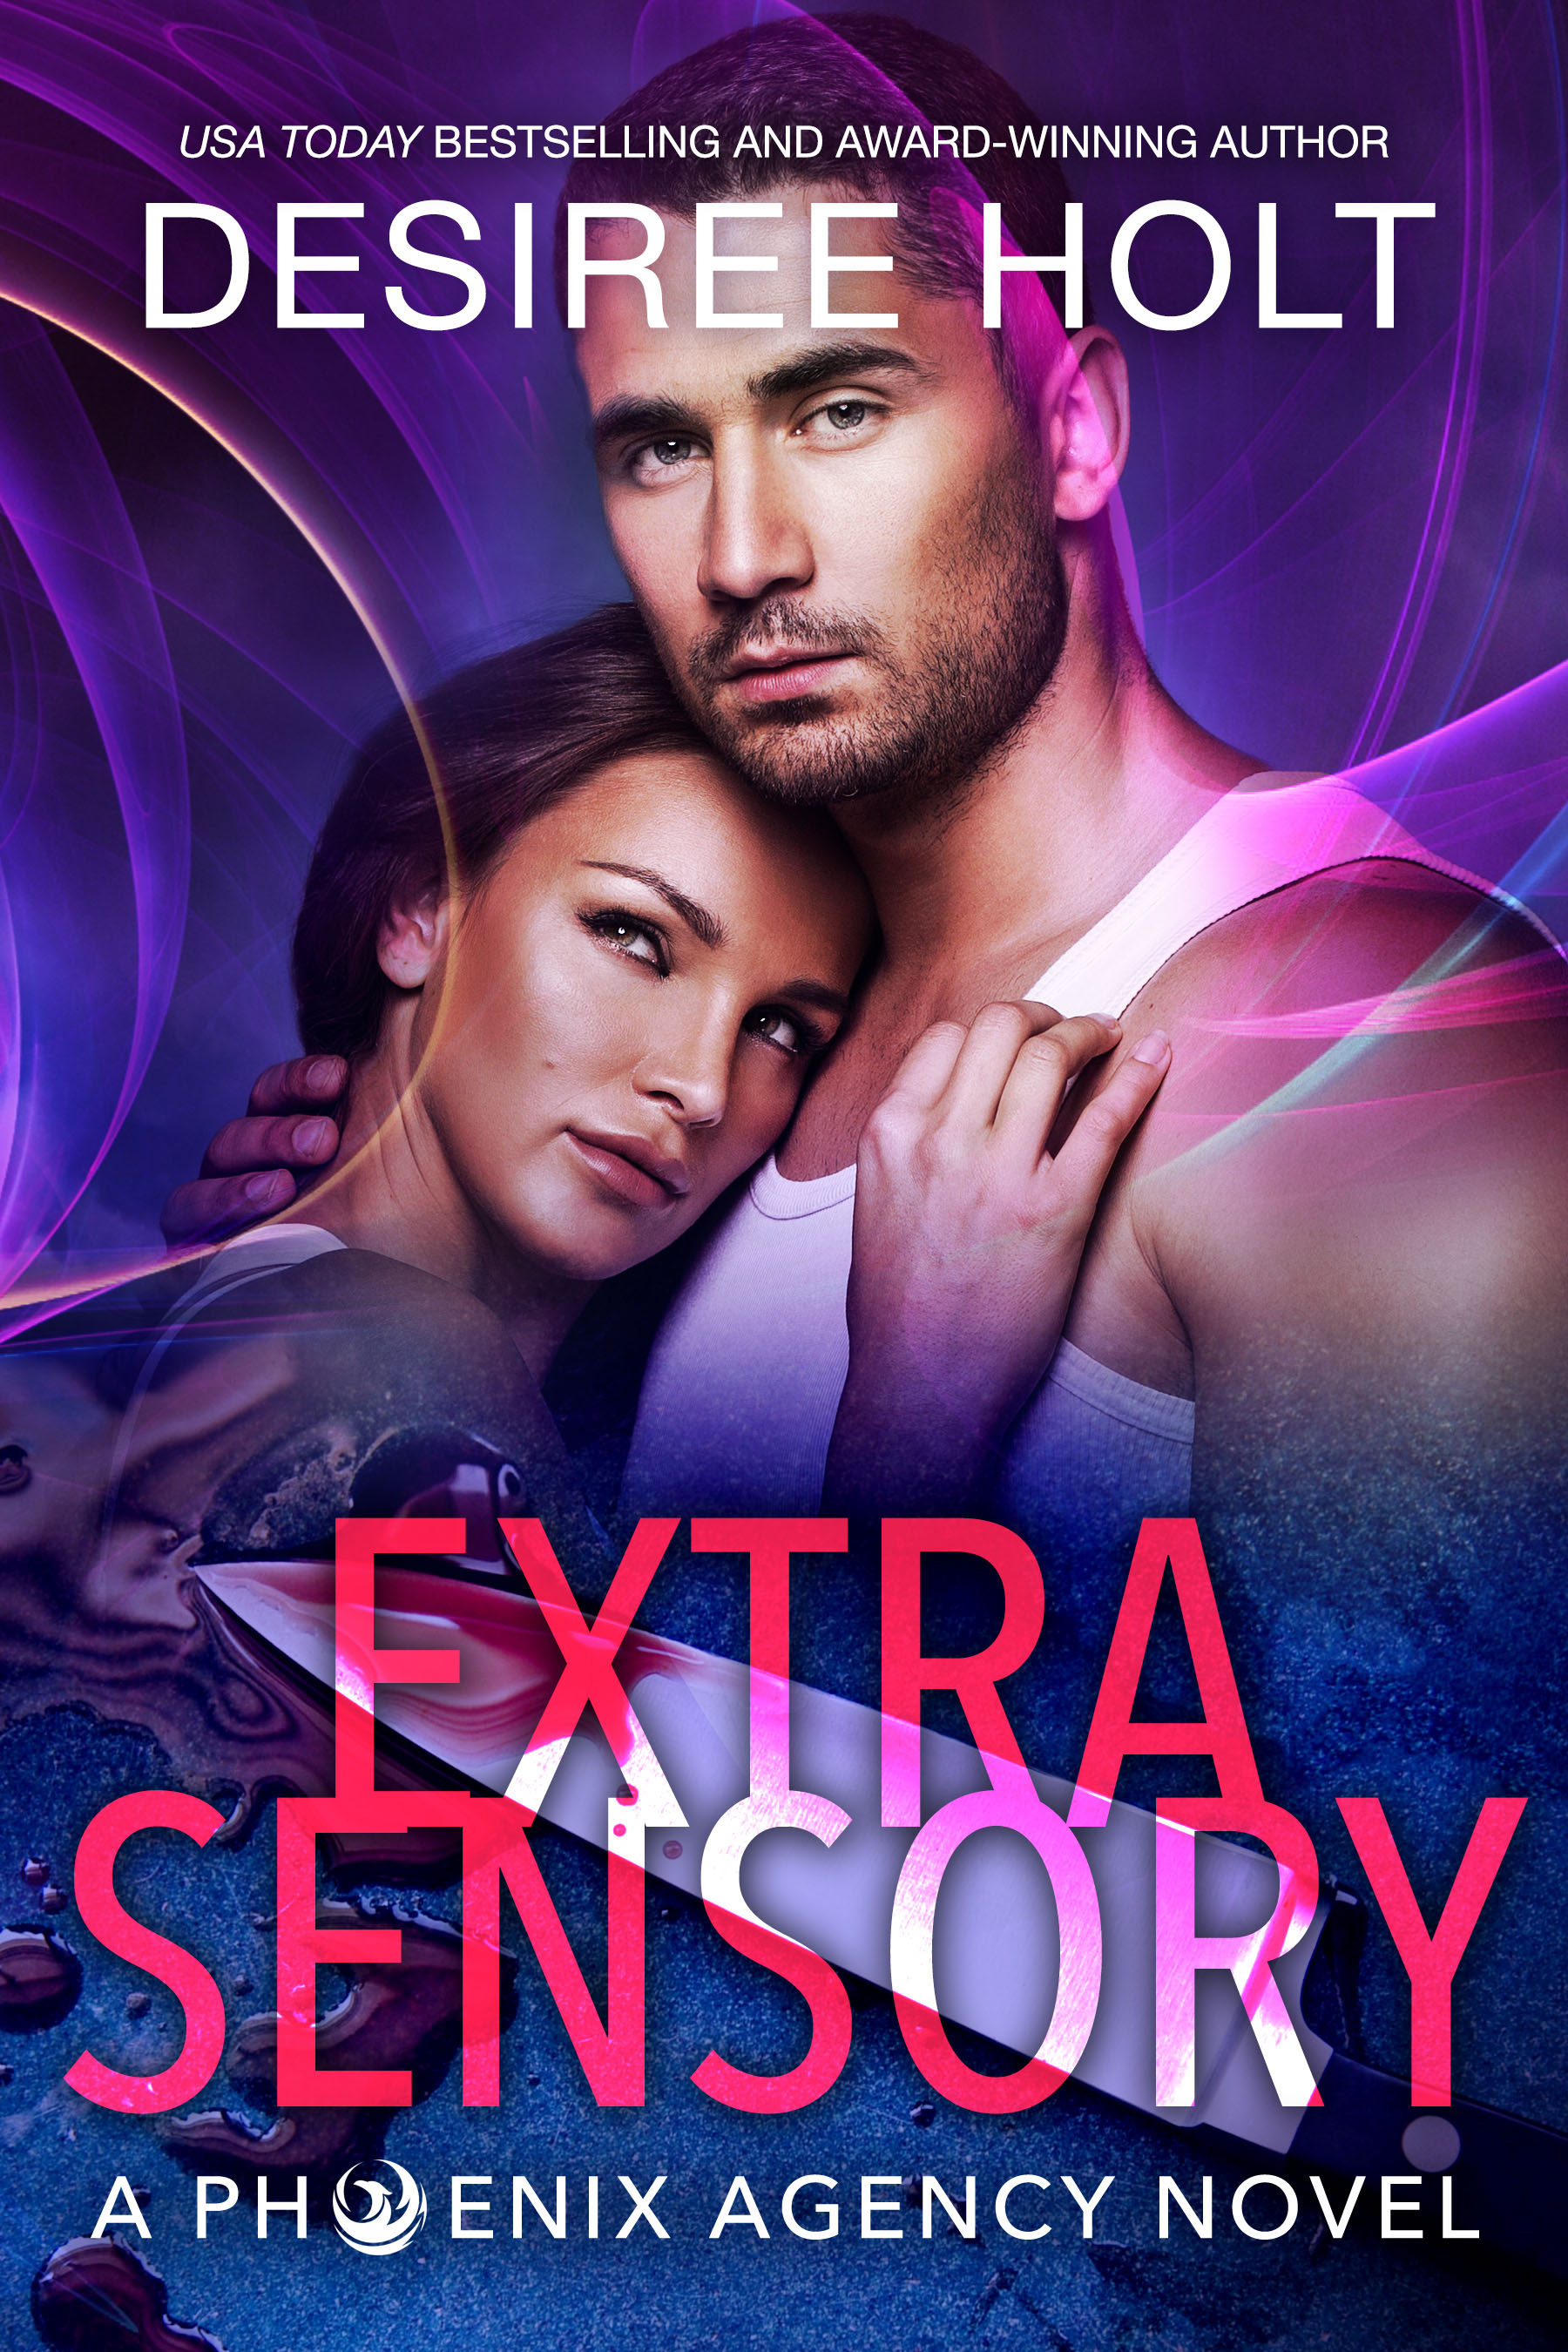 Only THREE more days to get EXTRASENSORY for Just 99 cents